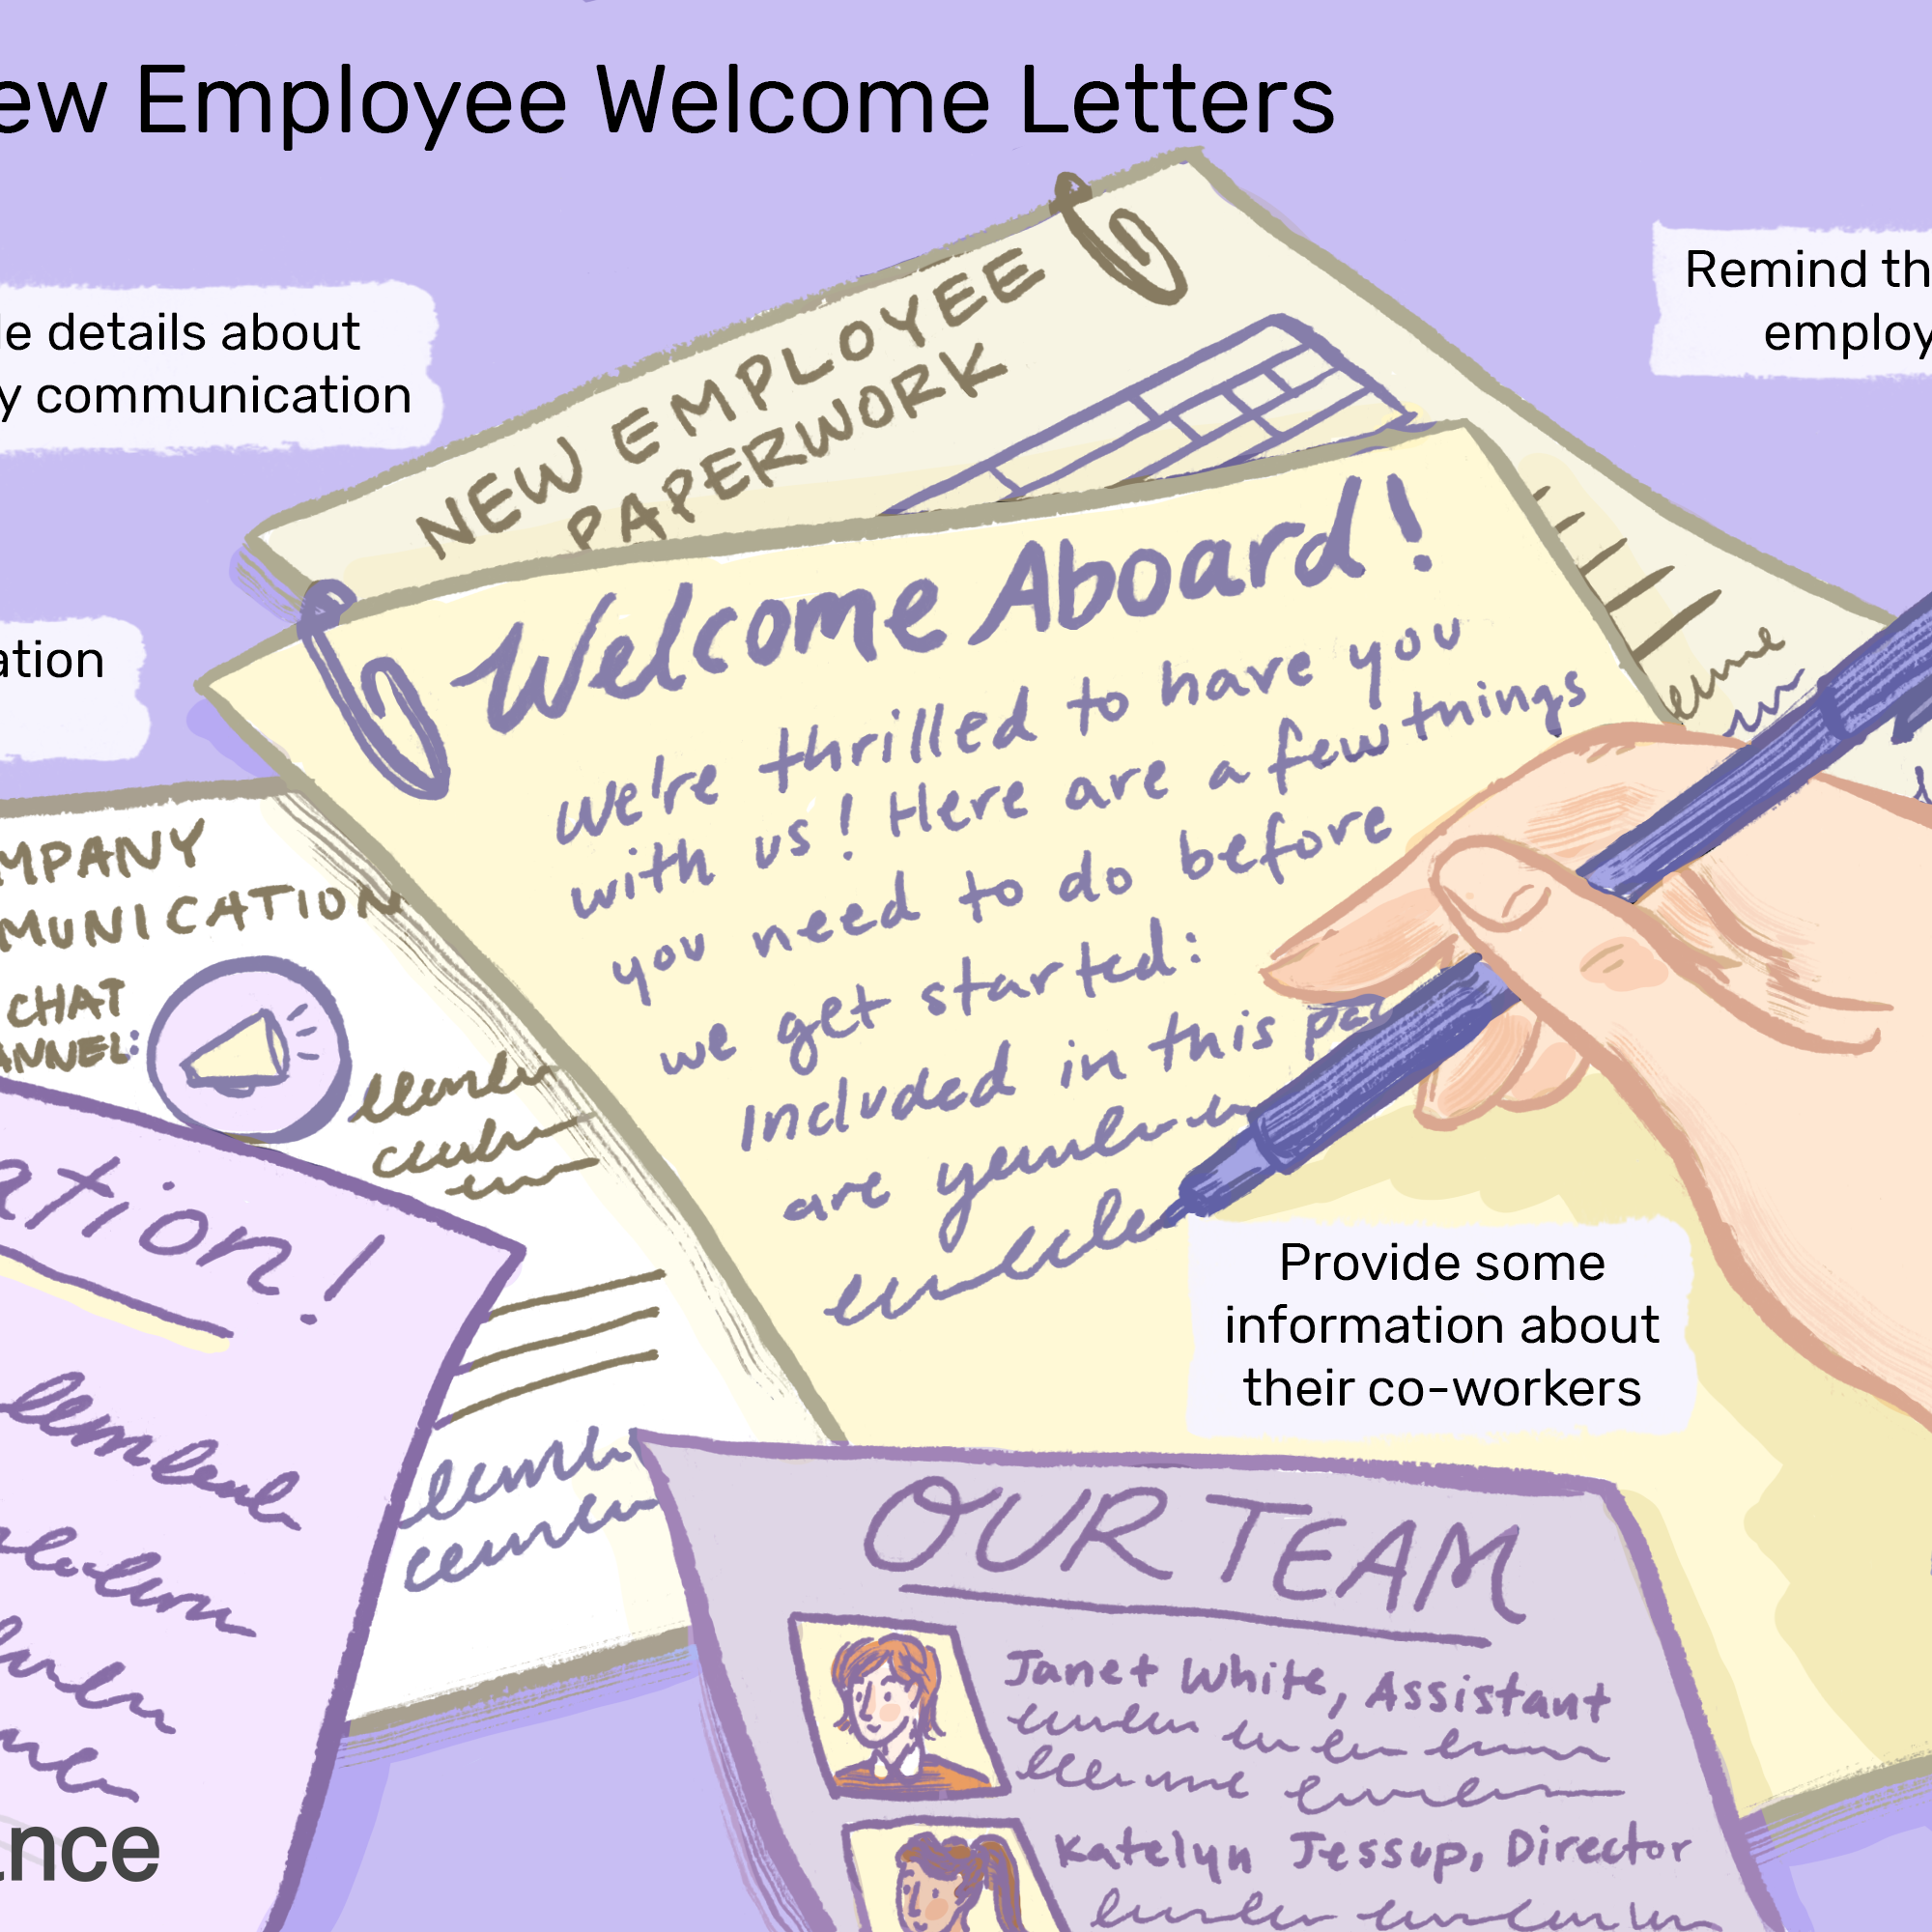 Sample Welcome Letter New Employee from www.thebalancecareers.com